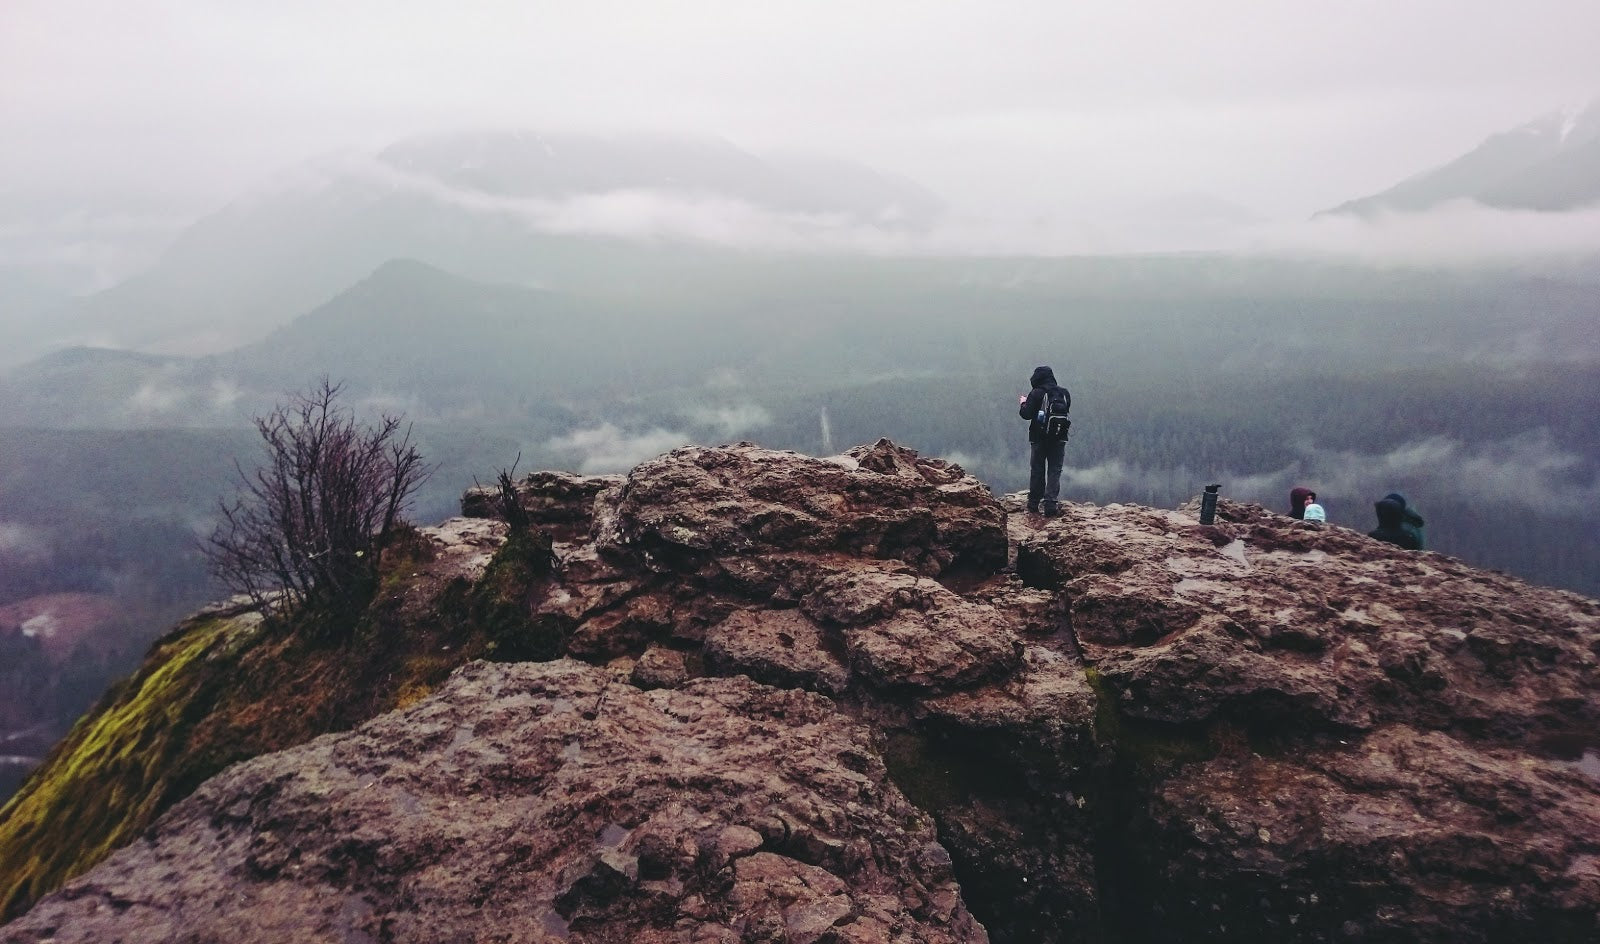 Six Amazing Hikes in Washington State - Rattlesnake Ledge